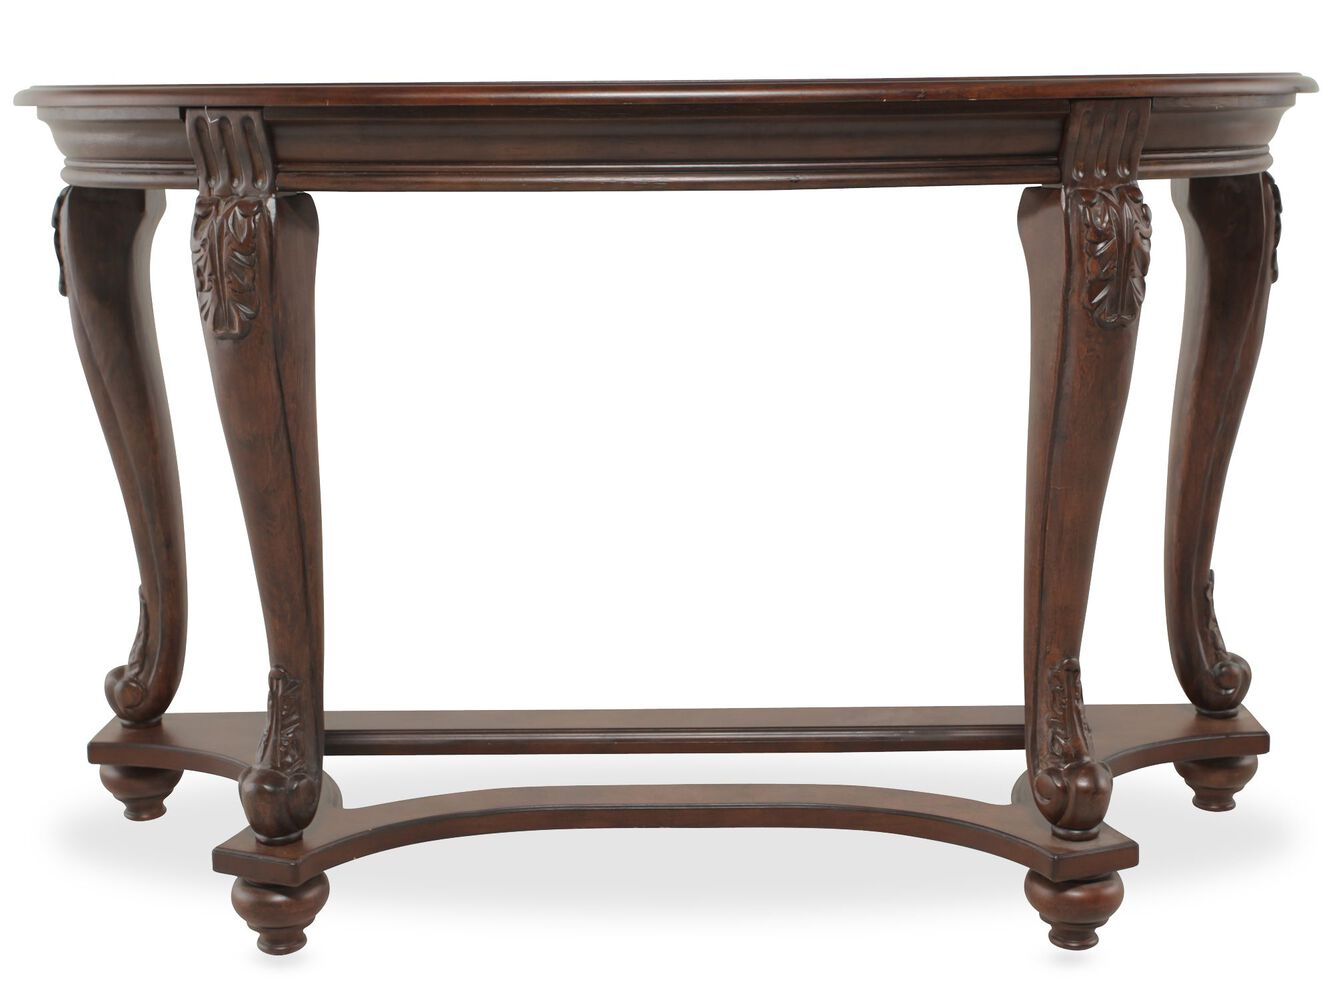 Traditional chippendale leg sofa table in brown mathis for Traditional sofas with legs